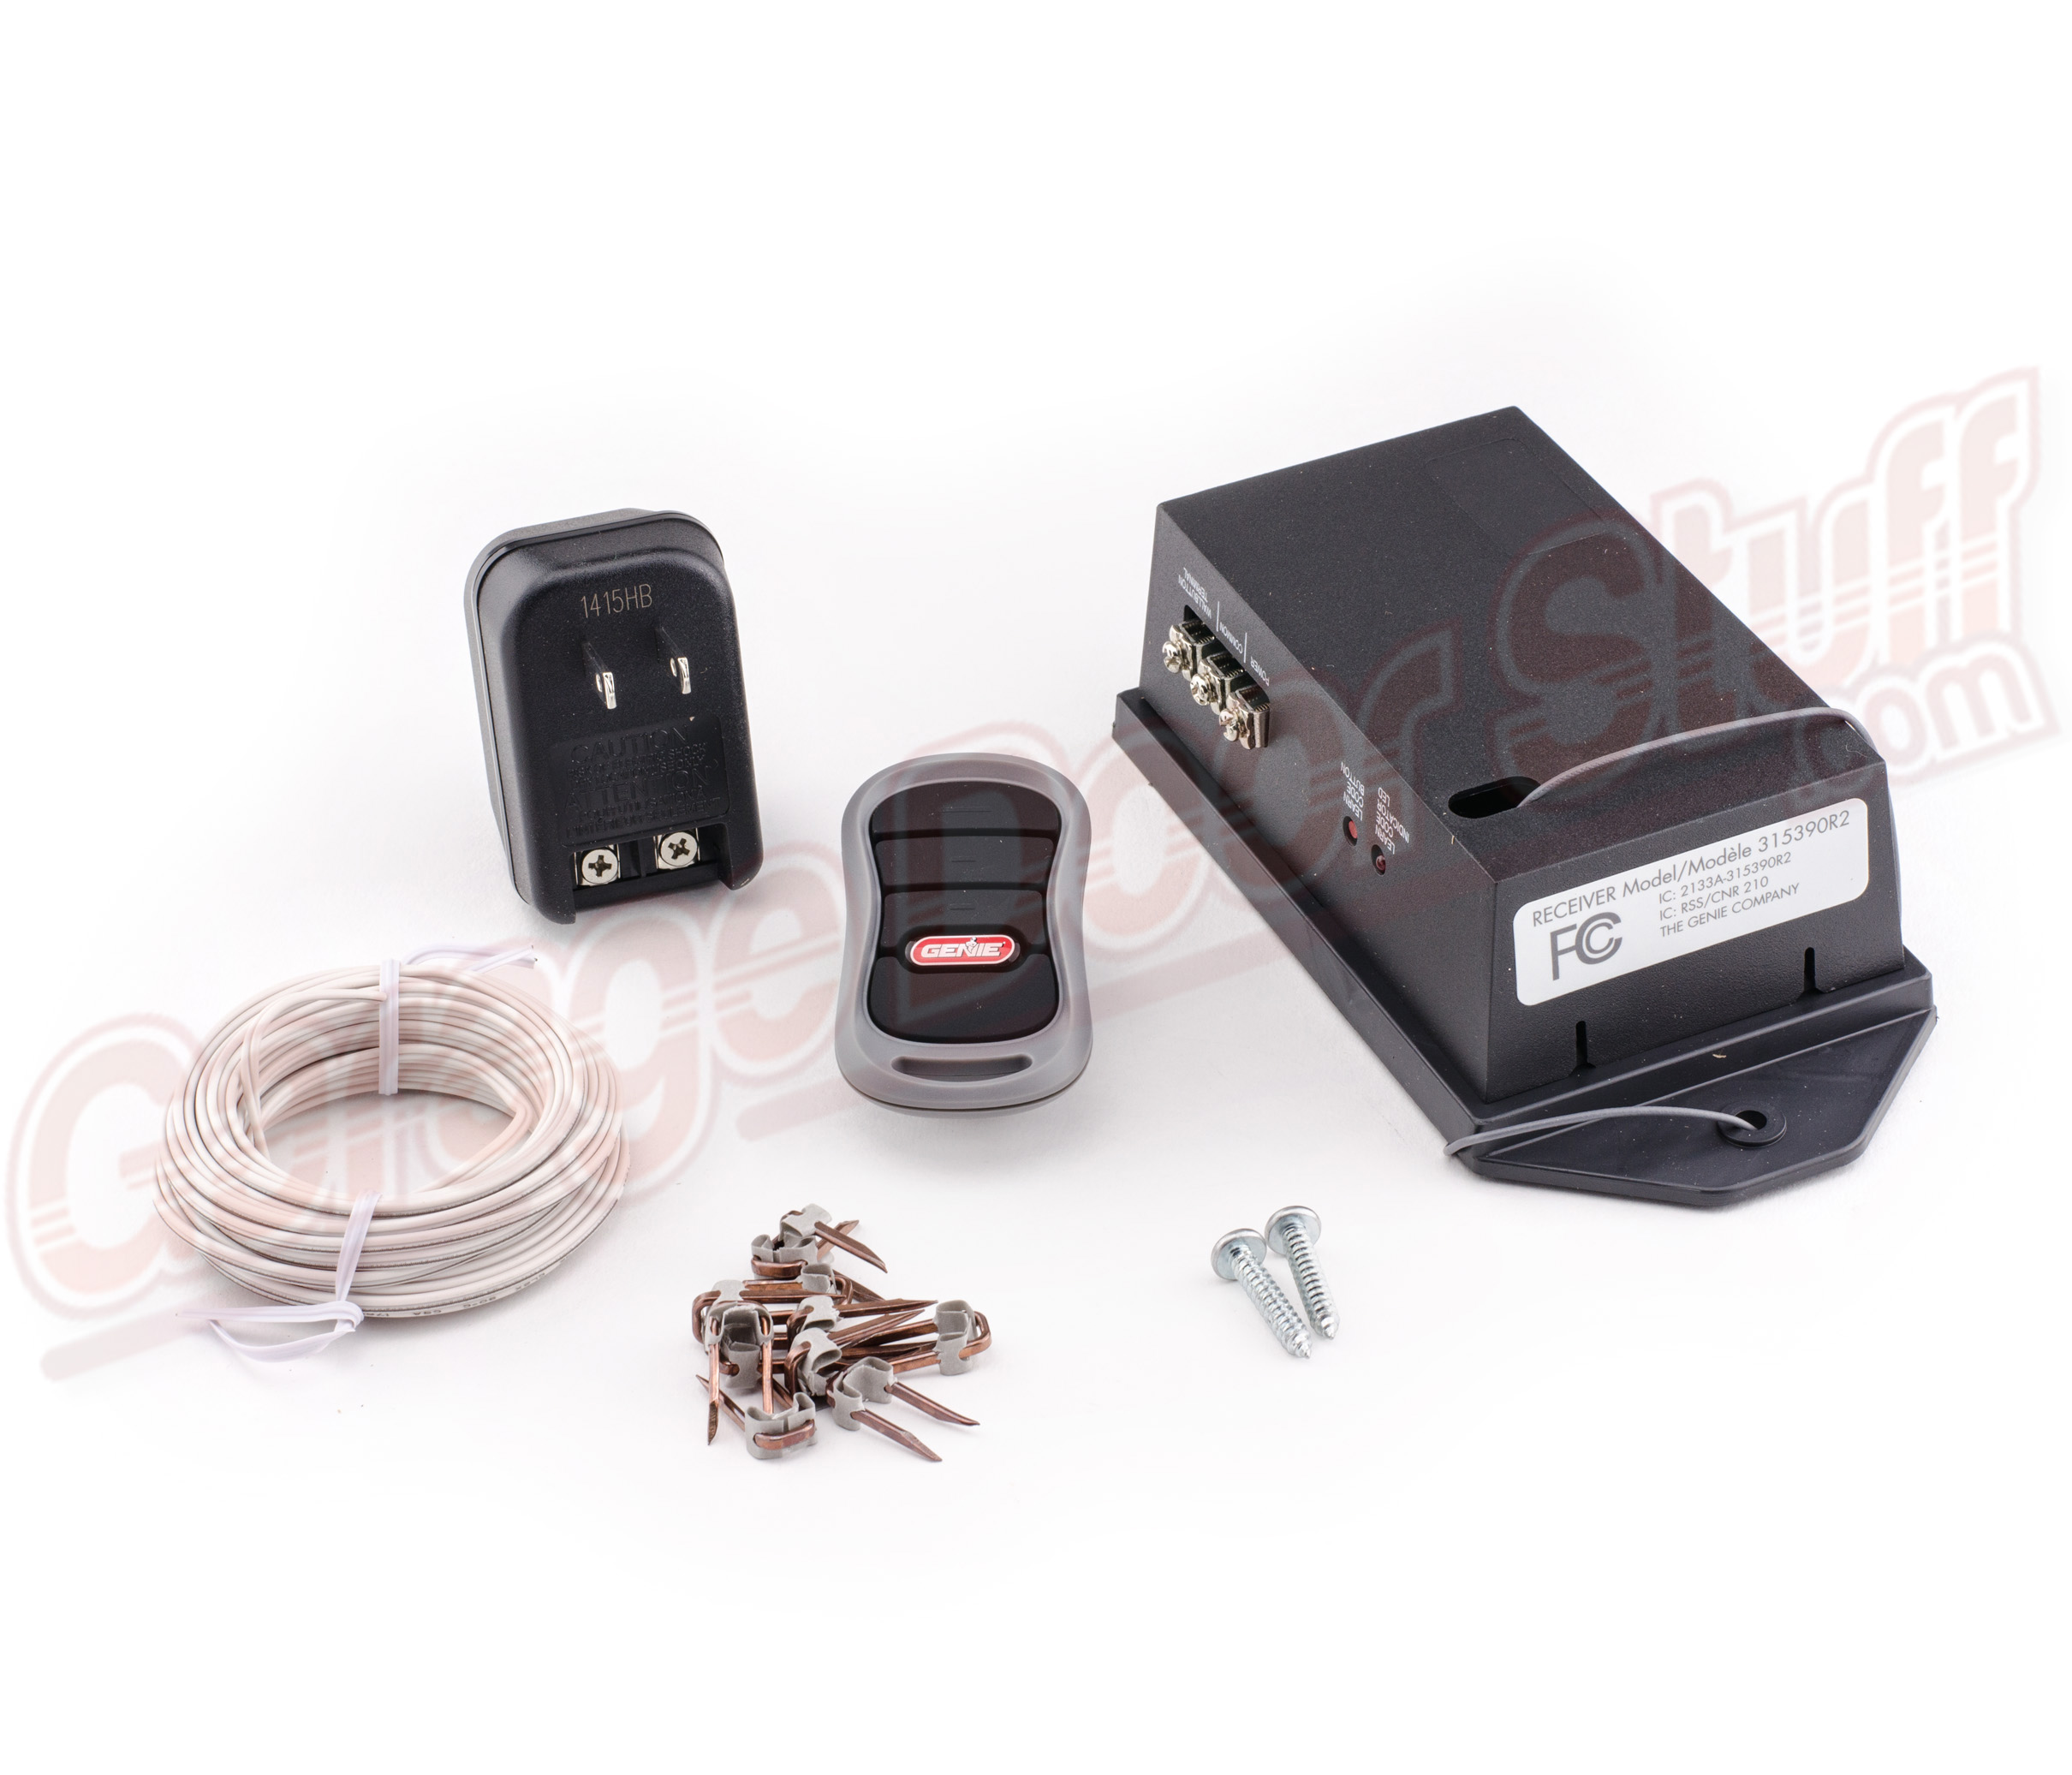 Garage Door Opener Remote Set Up Genie Girud 1t Garage Opener Remote Receiver Conversion Kit